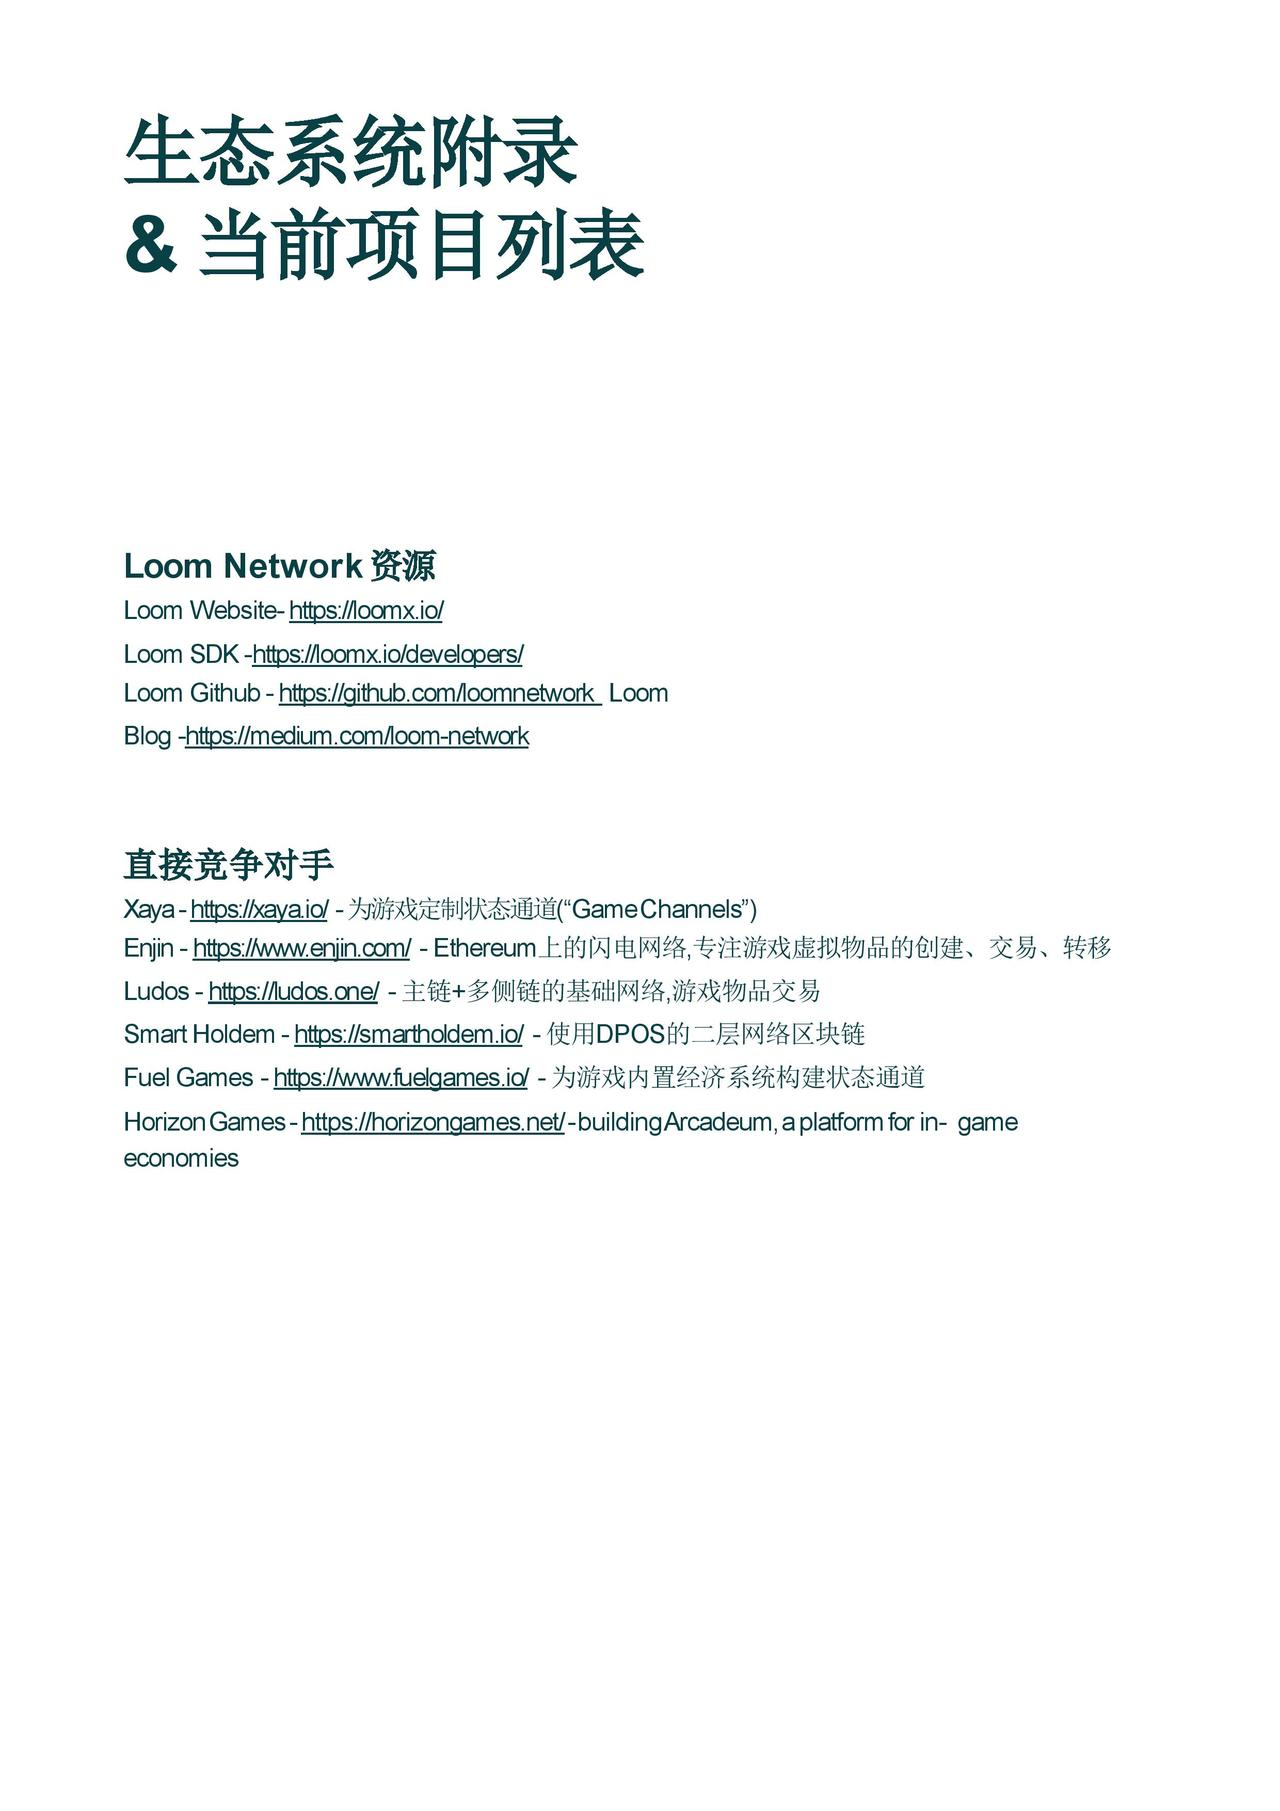 Document-page-023.jpg